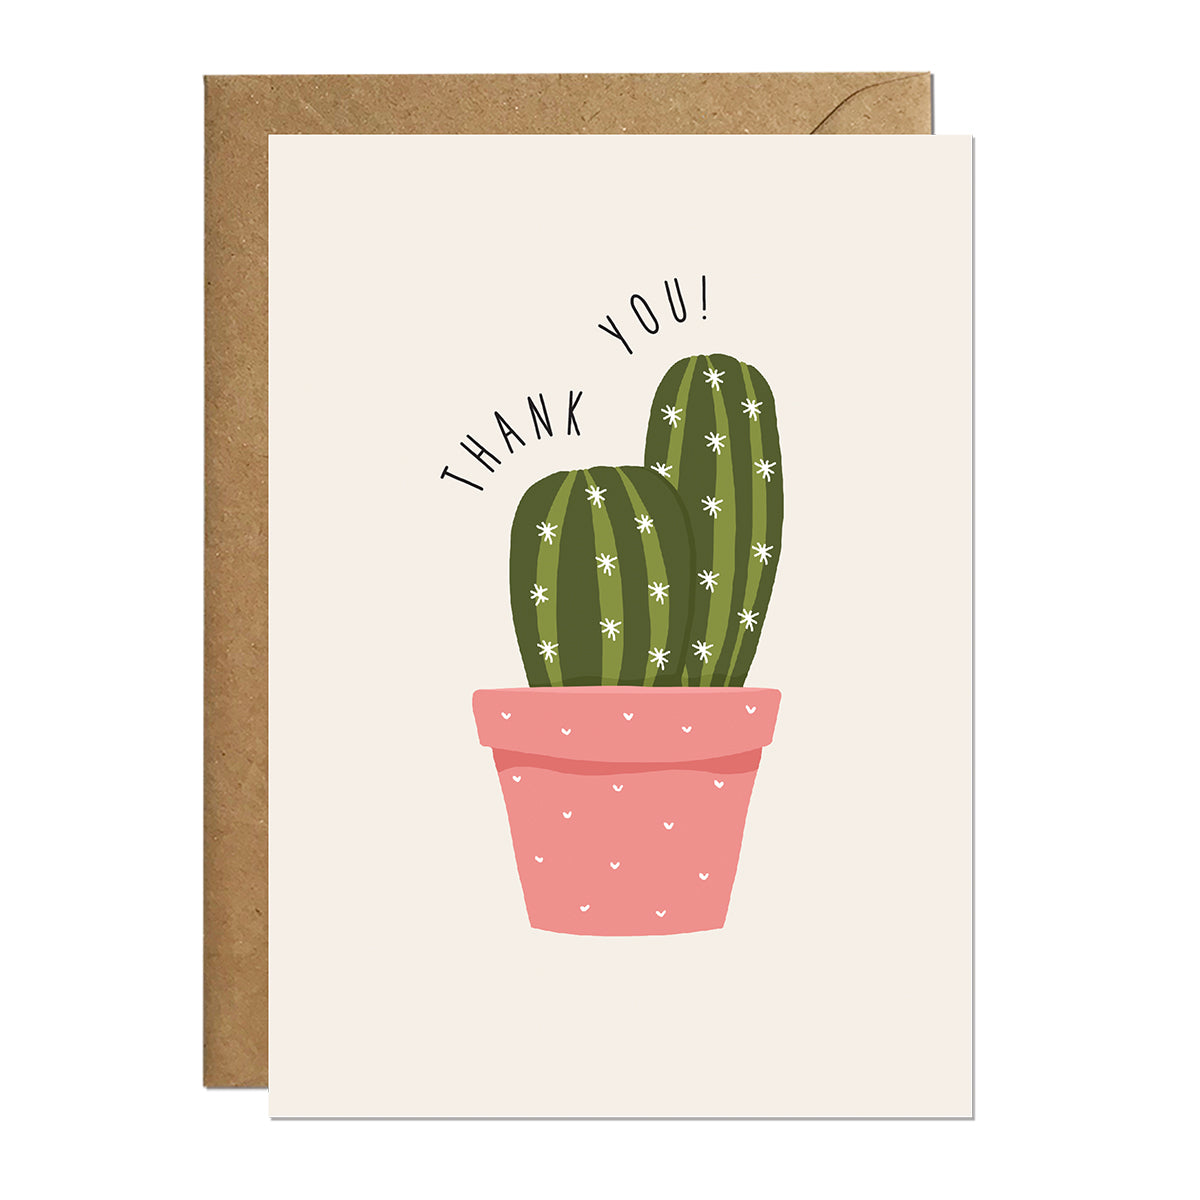 A thank you card featuring an illustration of a potted cactus with the greeting 'thank you'